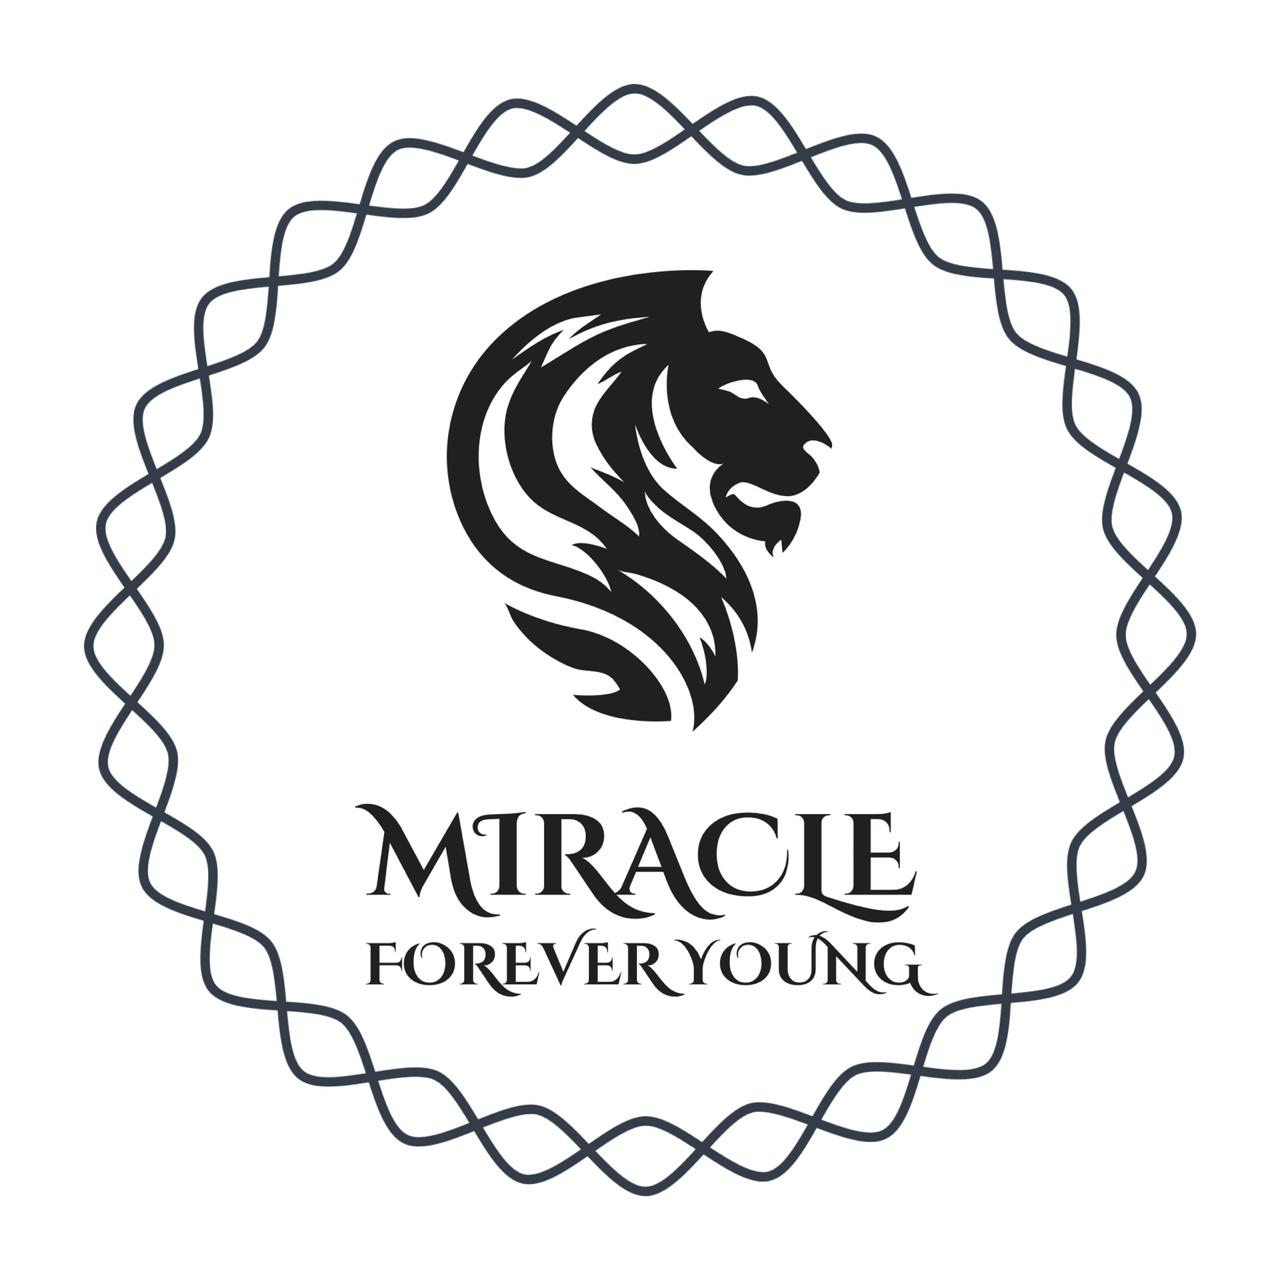 MIRACLEFOREVERYOUNG